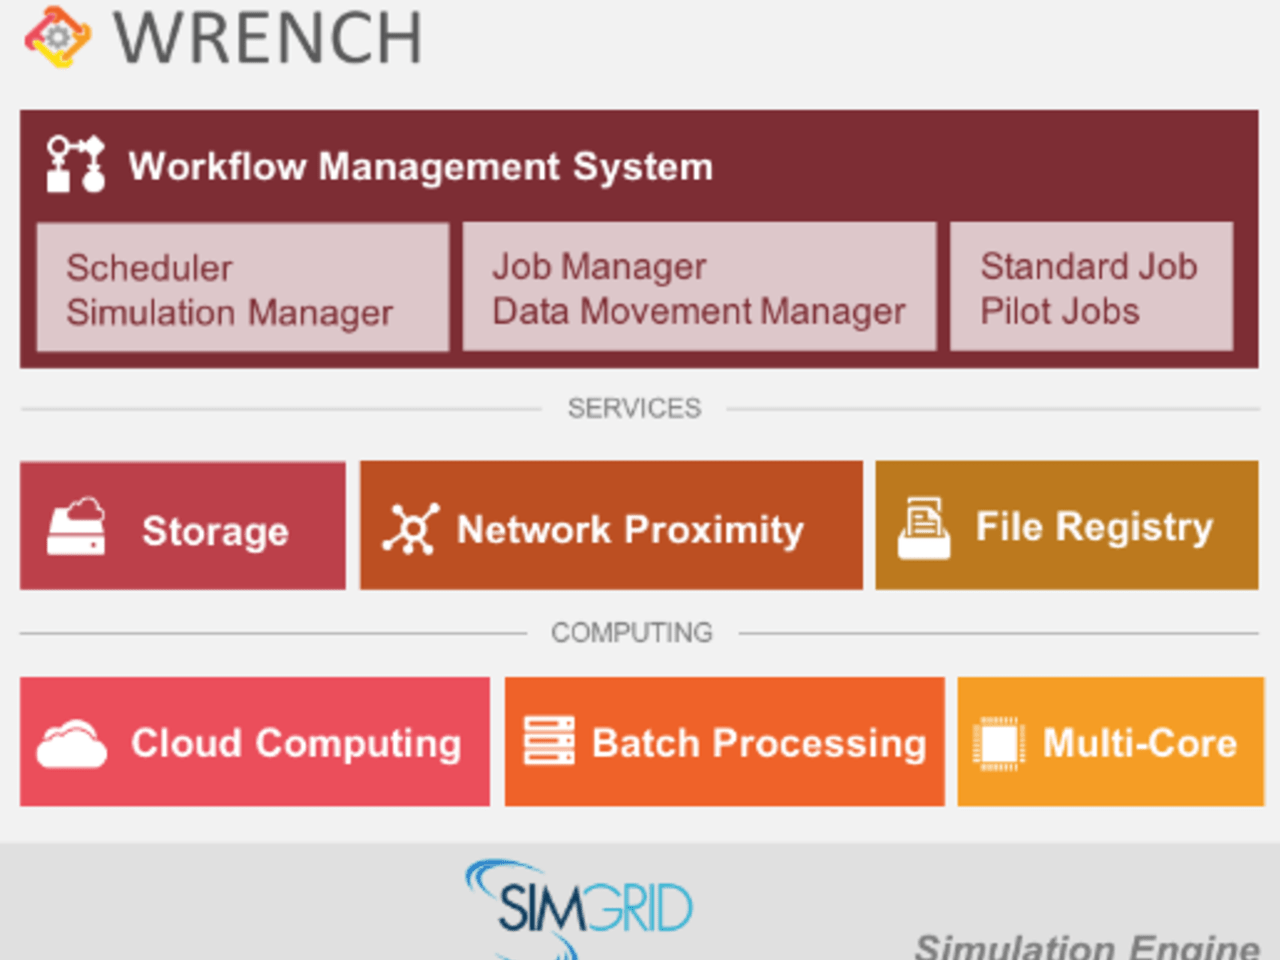 WRENCH: Workflow Management System Simulation Workbench